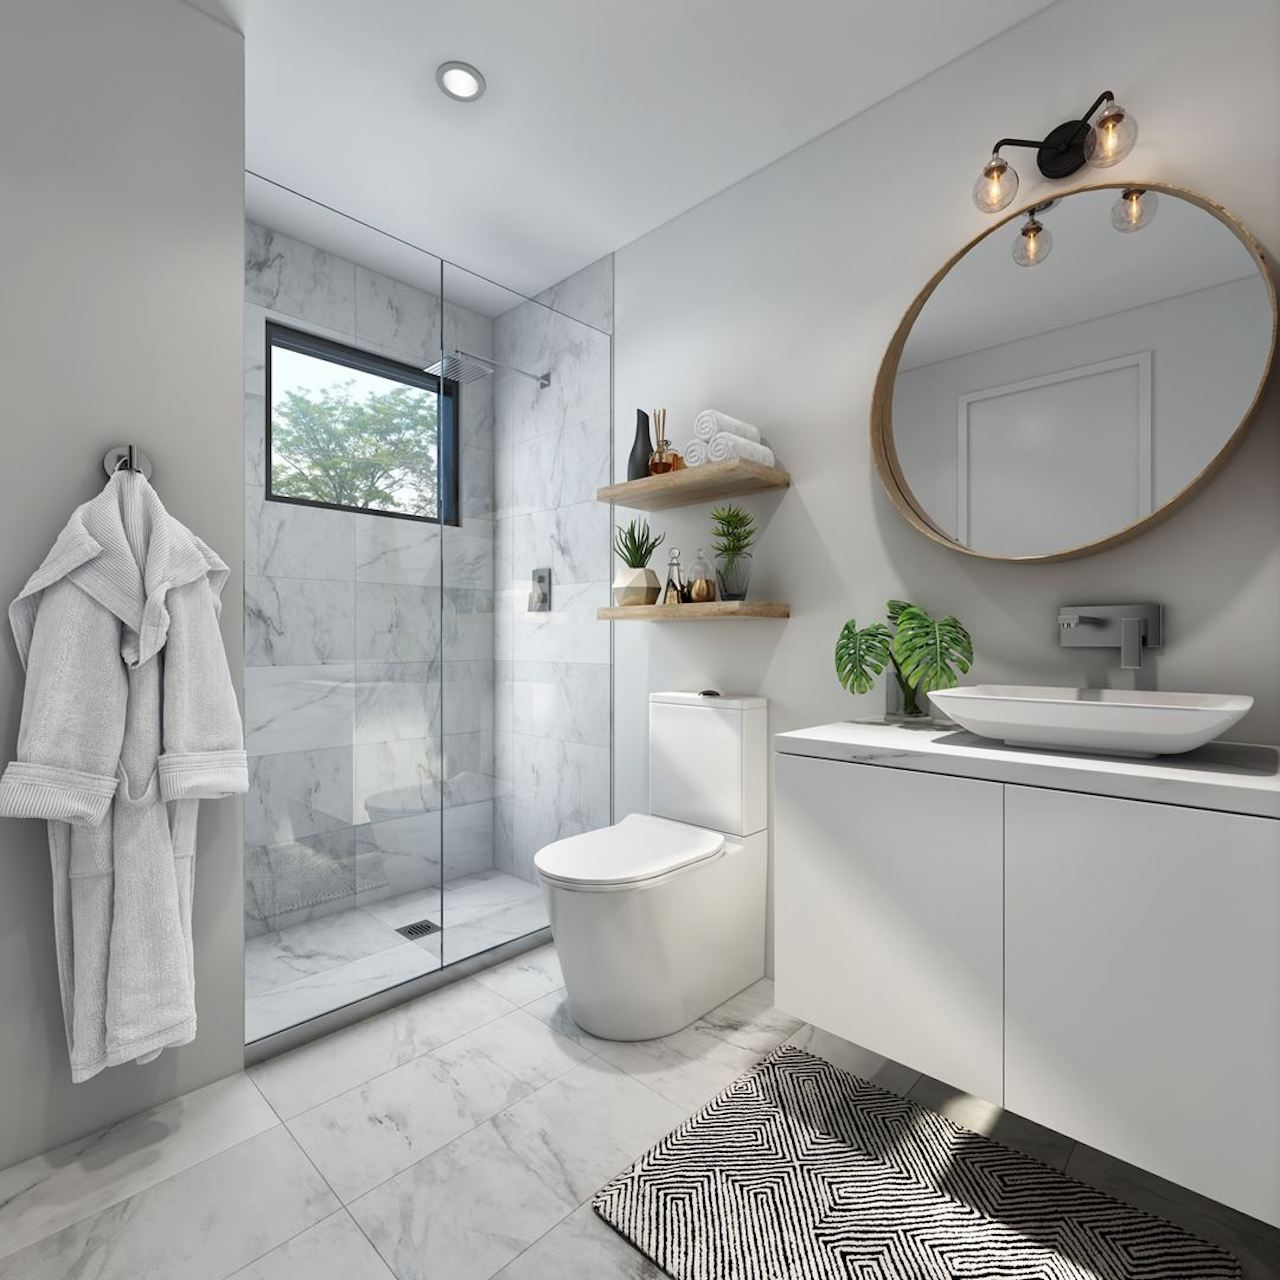 Interior rendering of The Boho Condos suite bathroom.